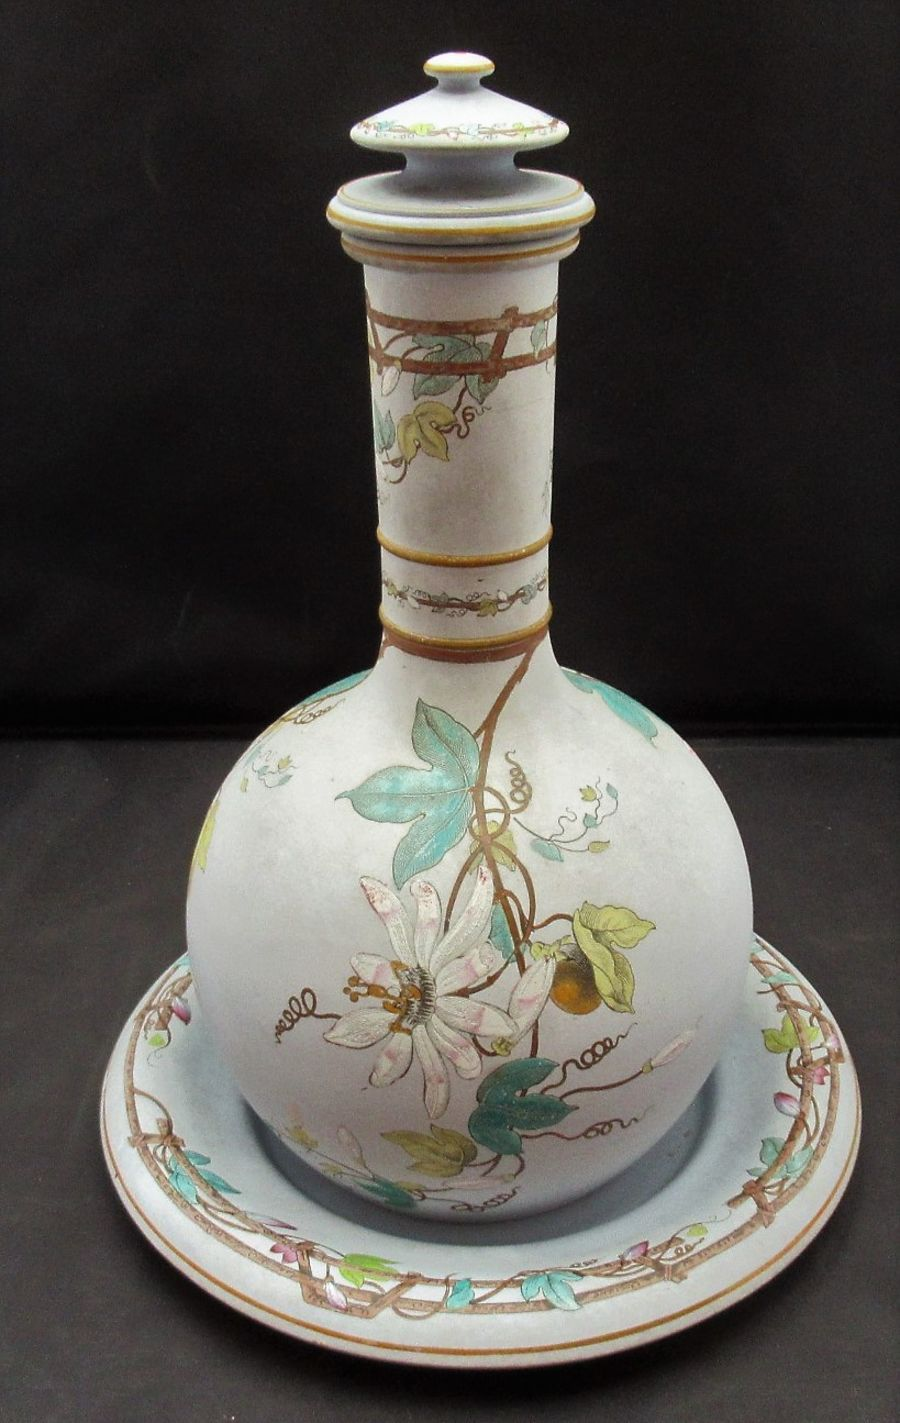 Copeland Late Spode covered jar and stand painted with Passion Flower, c1850